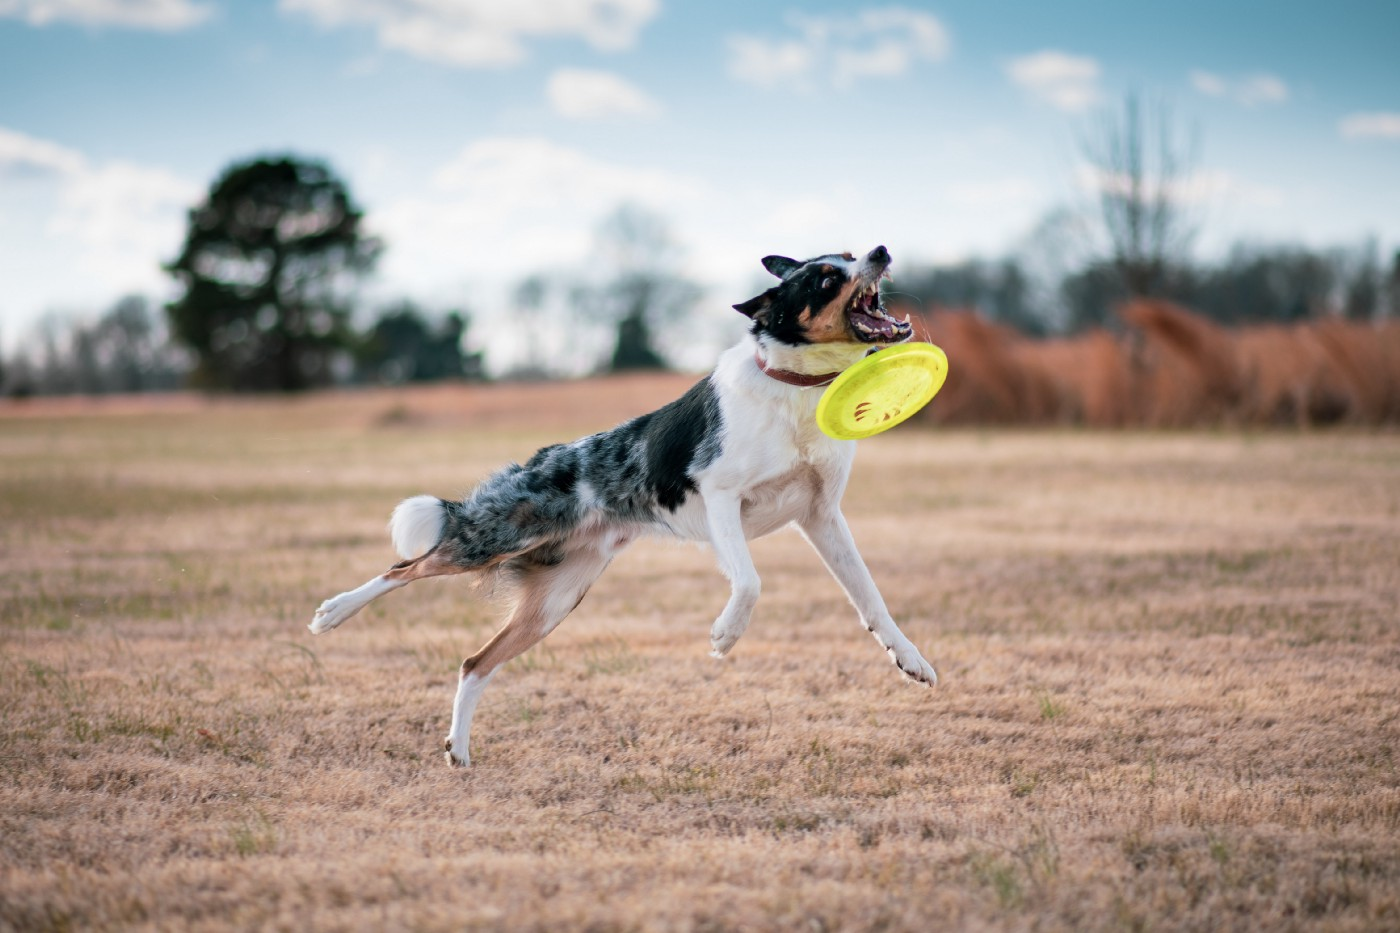 Dog trying—and failing—to catch a ball